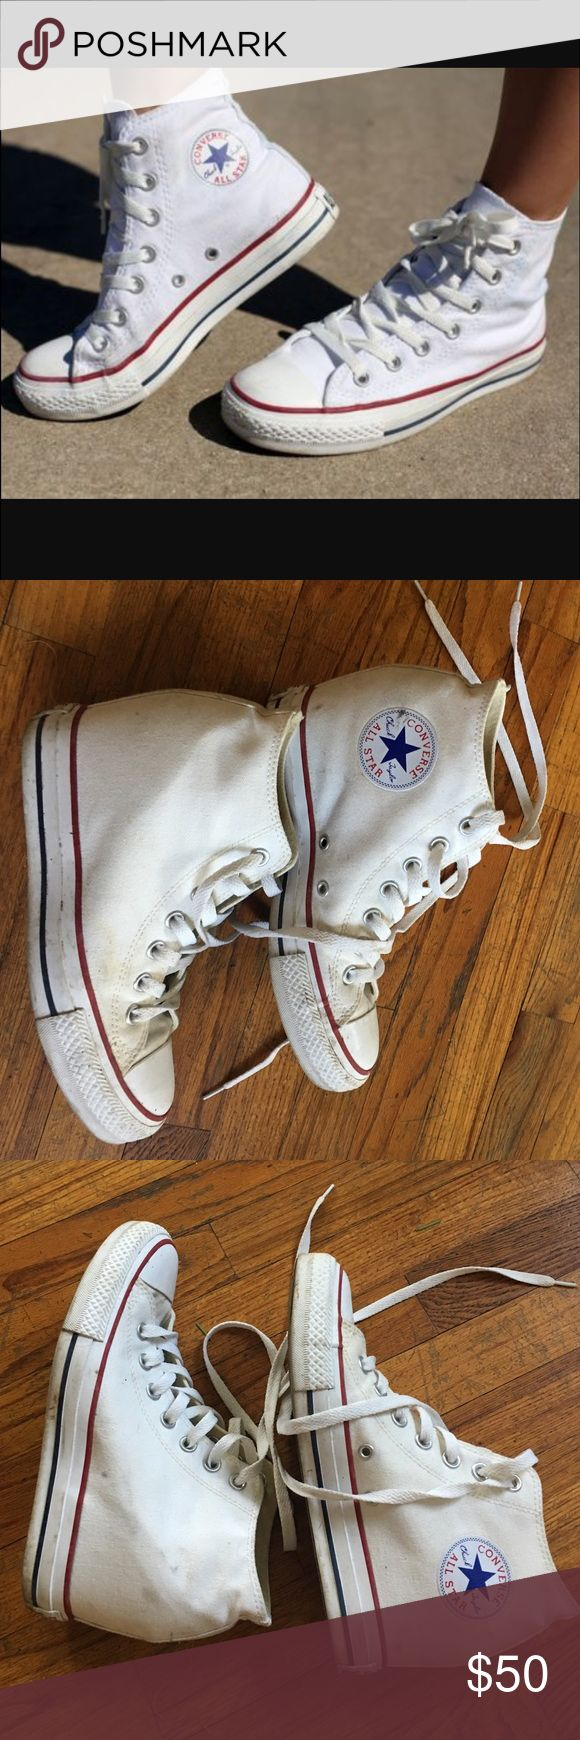 High top white converse wedge 8.5 W Worn a few times, please notice dirt marks. It has a hidden wedge to make your legs look longer and add height. Converse Shoes Sneakers